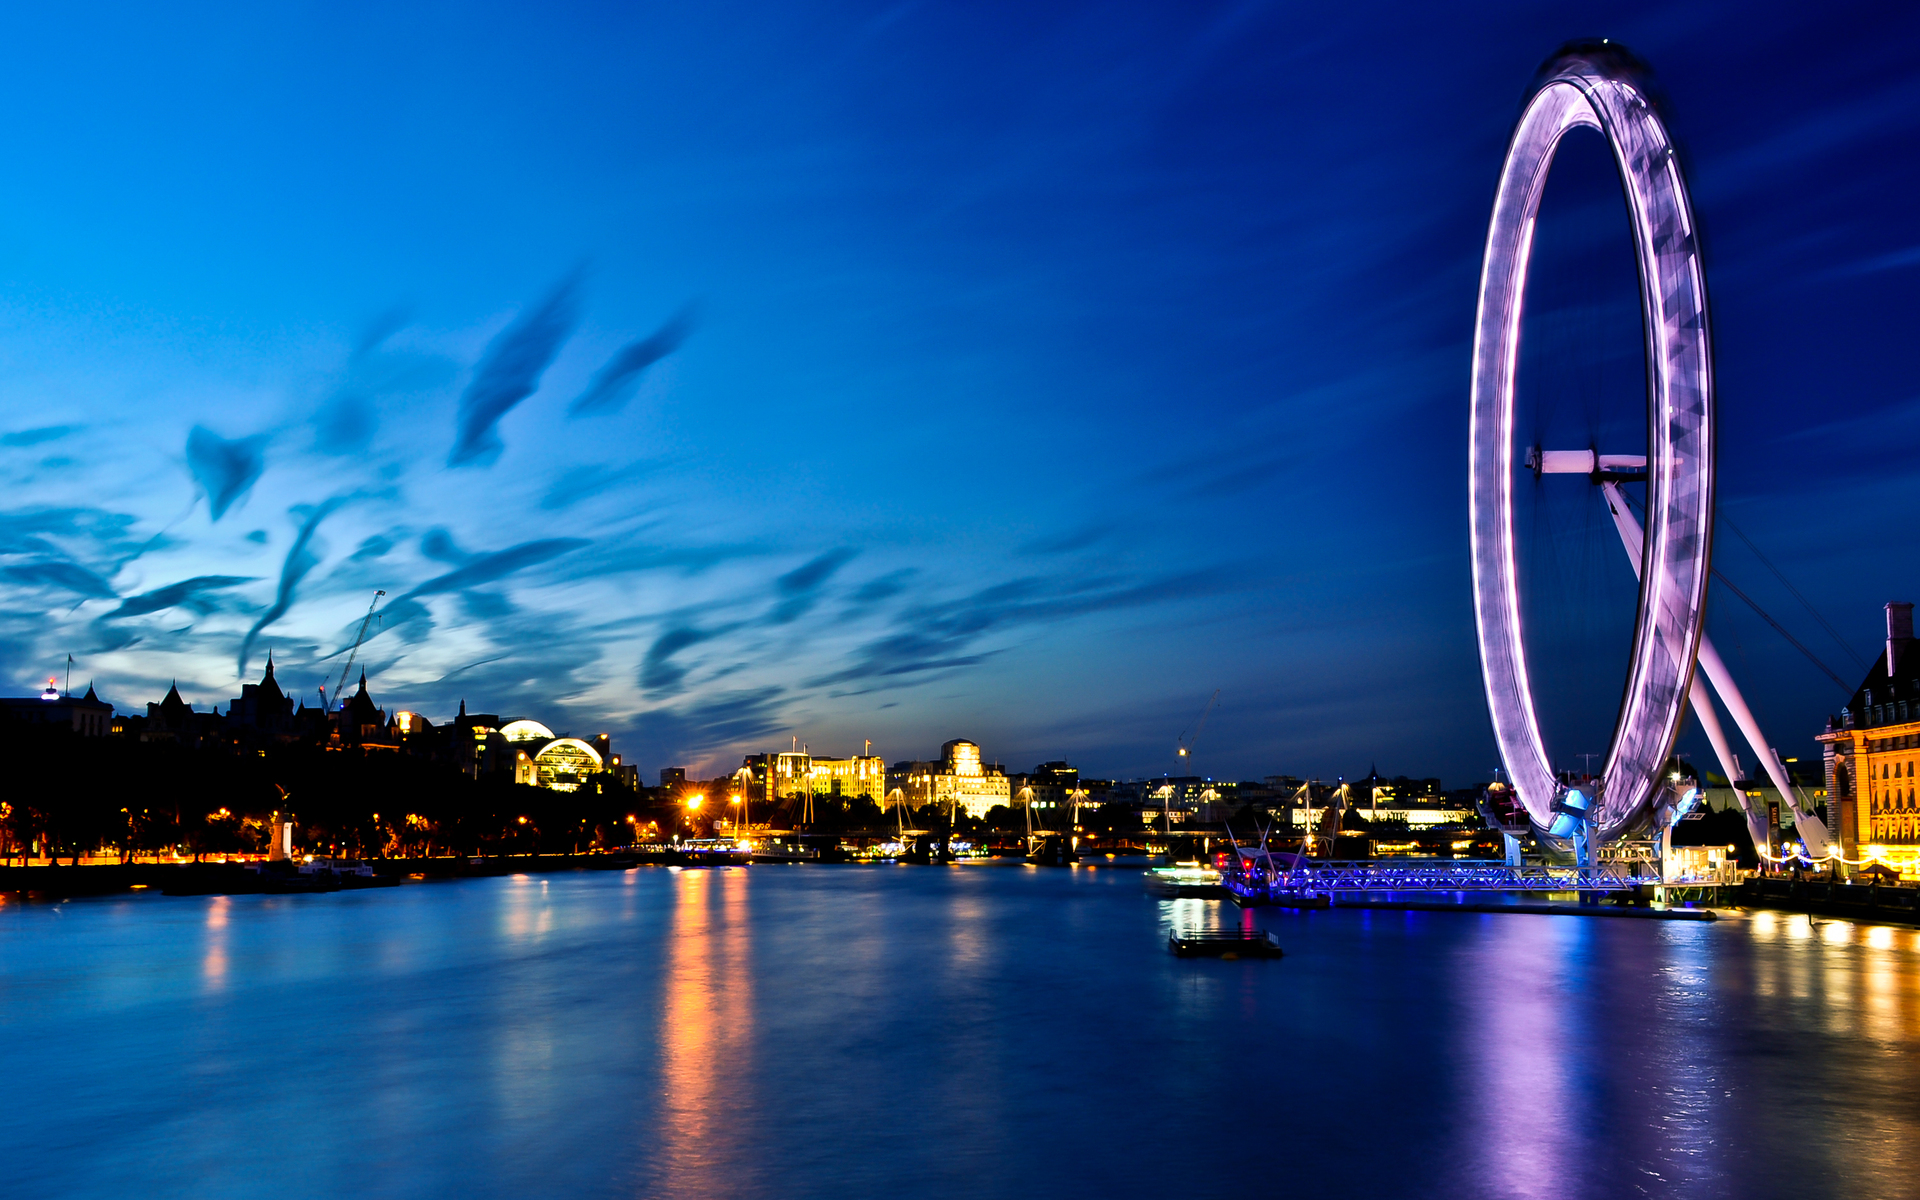 london eye, river, thames, england, london, uk